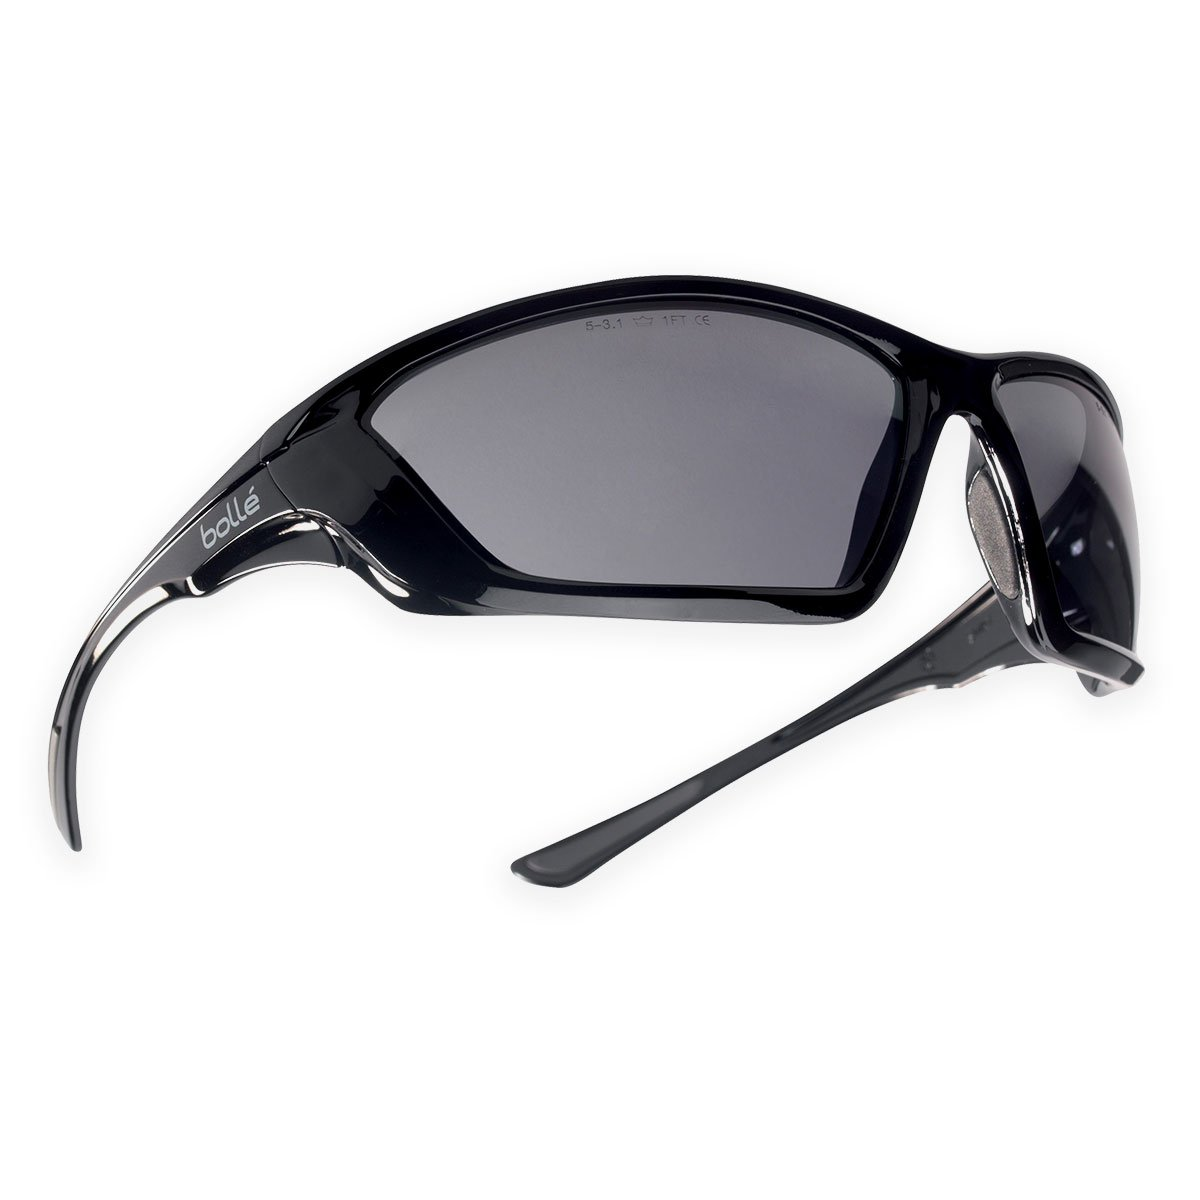 b47c85459bf Amazon.com  Bolle Tactical SWAT Ballistic Sunglasses - Smoke Lens Black  Frame  Home Improvement